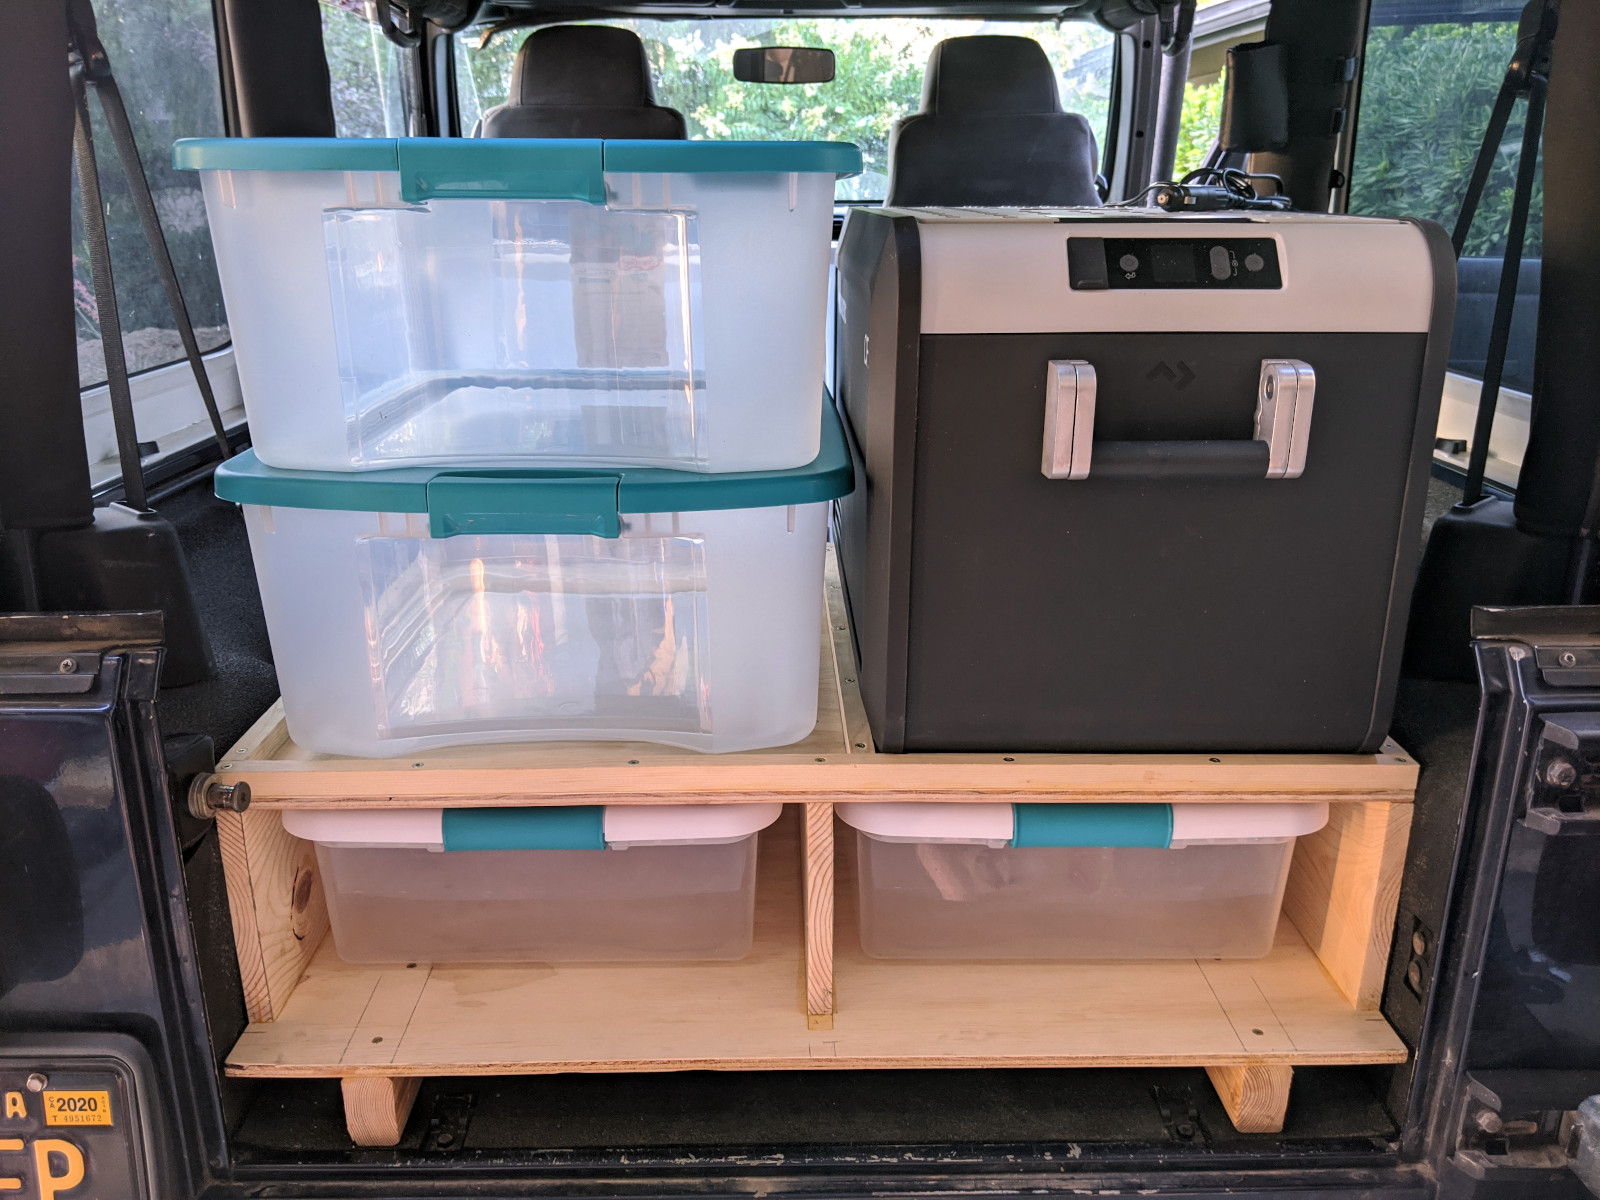 Cabinet with plastic bin drawers, cooler, and additional plastic bin storage